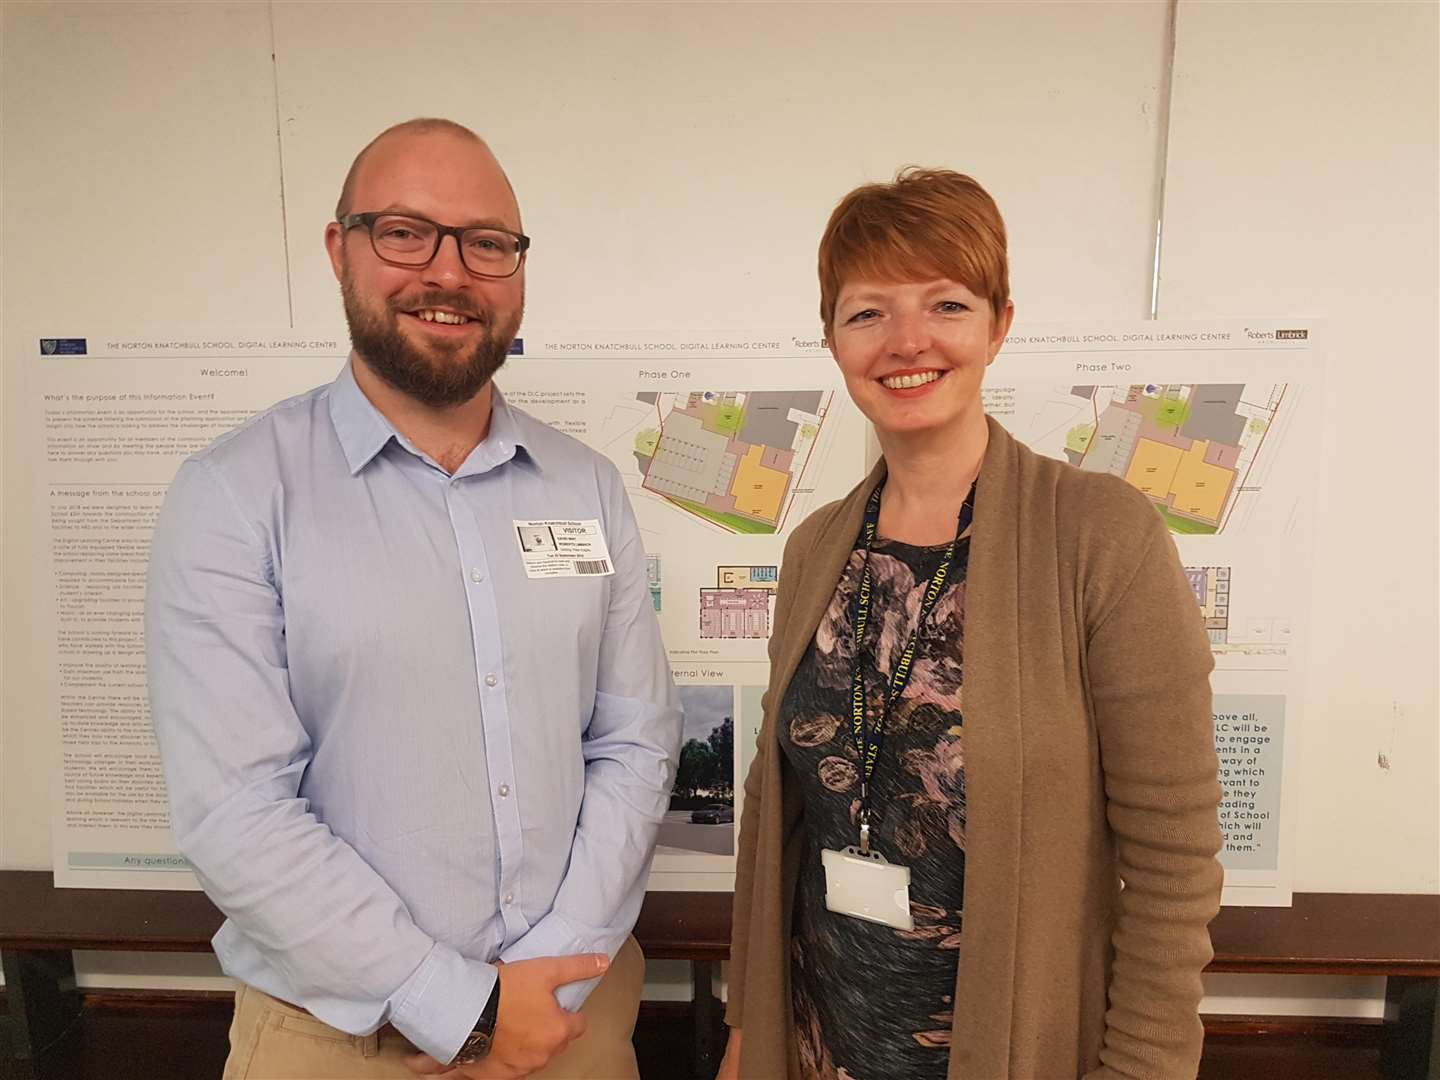 David Wint, from architect Roberts Limbrick, with head teacher Susanne Staab